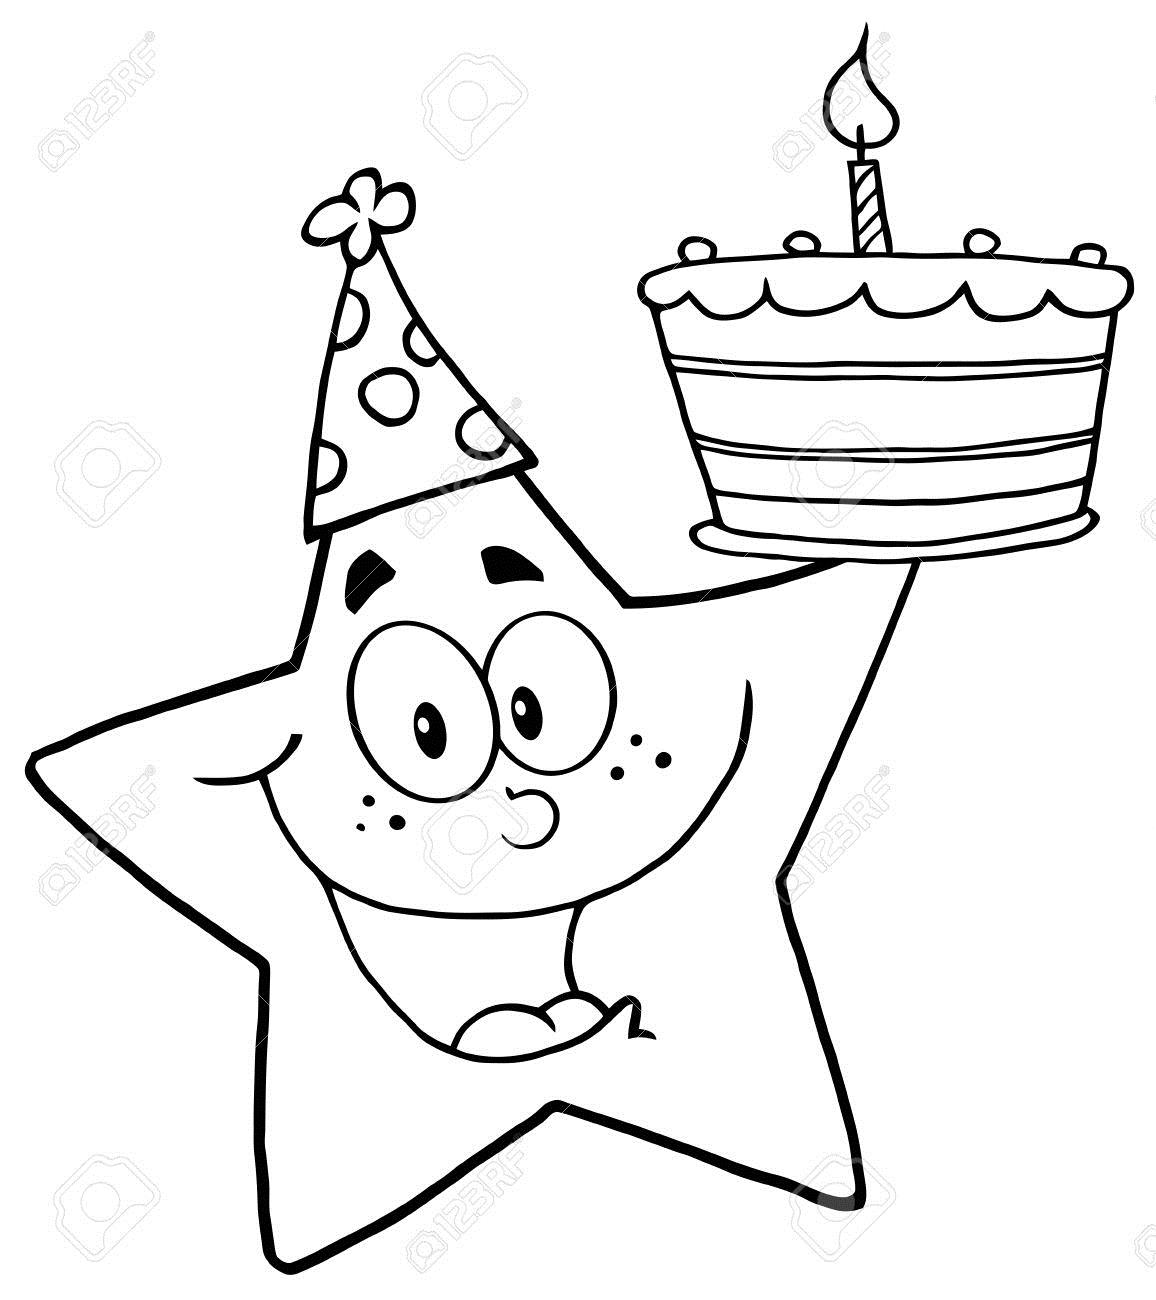 birthday cake cartoon drawing ; birthday%2520cartoon%2520drawings%2520;%252012493515-outline-happy-star-holding-a-birthday-cake